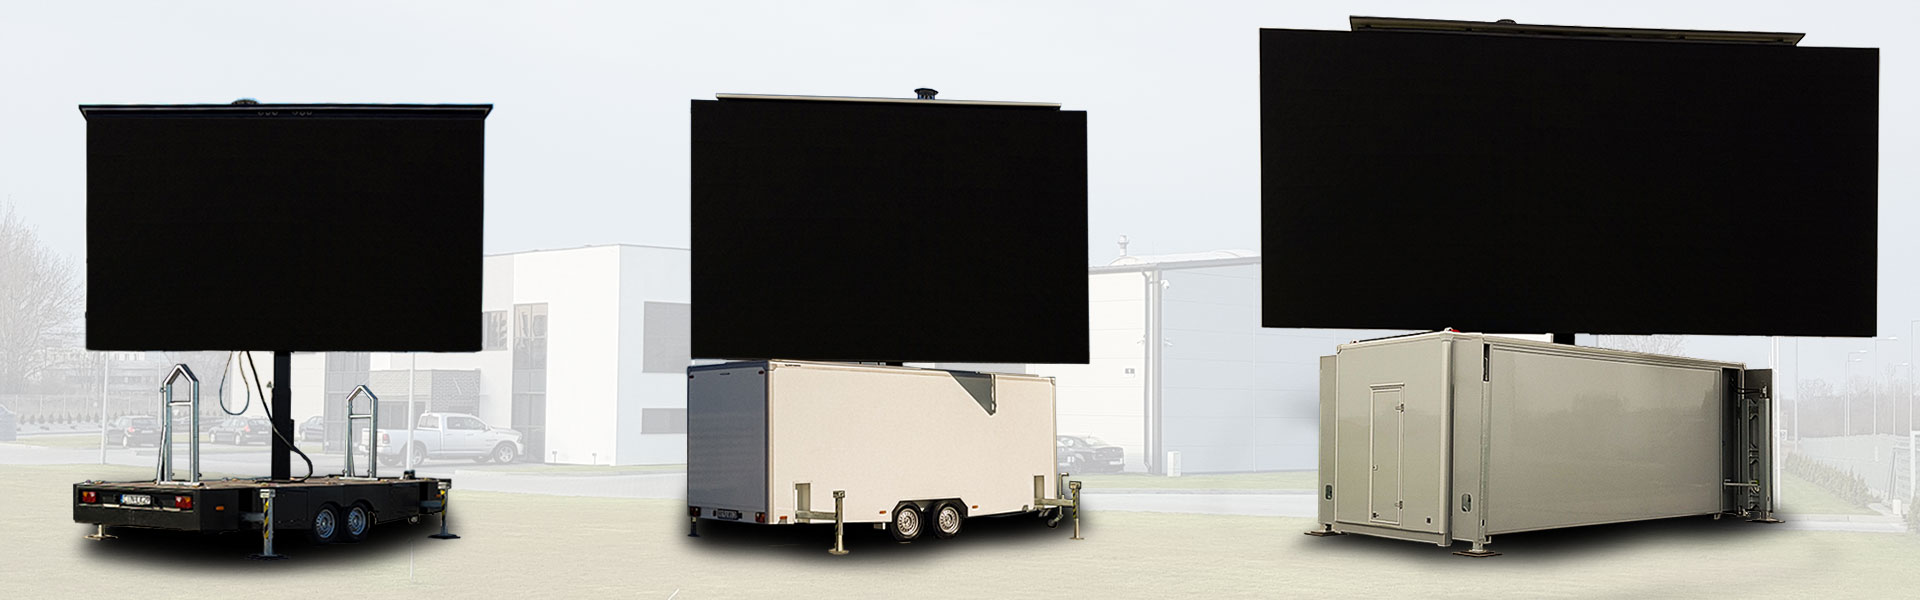 Outdoor Anhänger Mobile Led Screens Manufacturer Trailers For Sale Screen Led